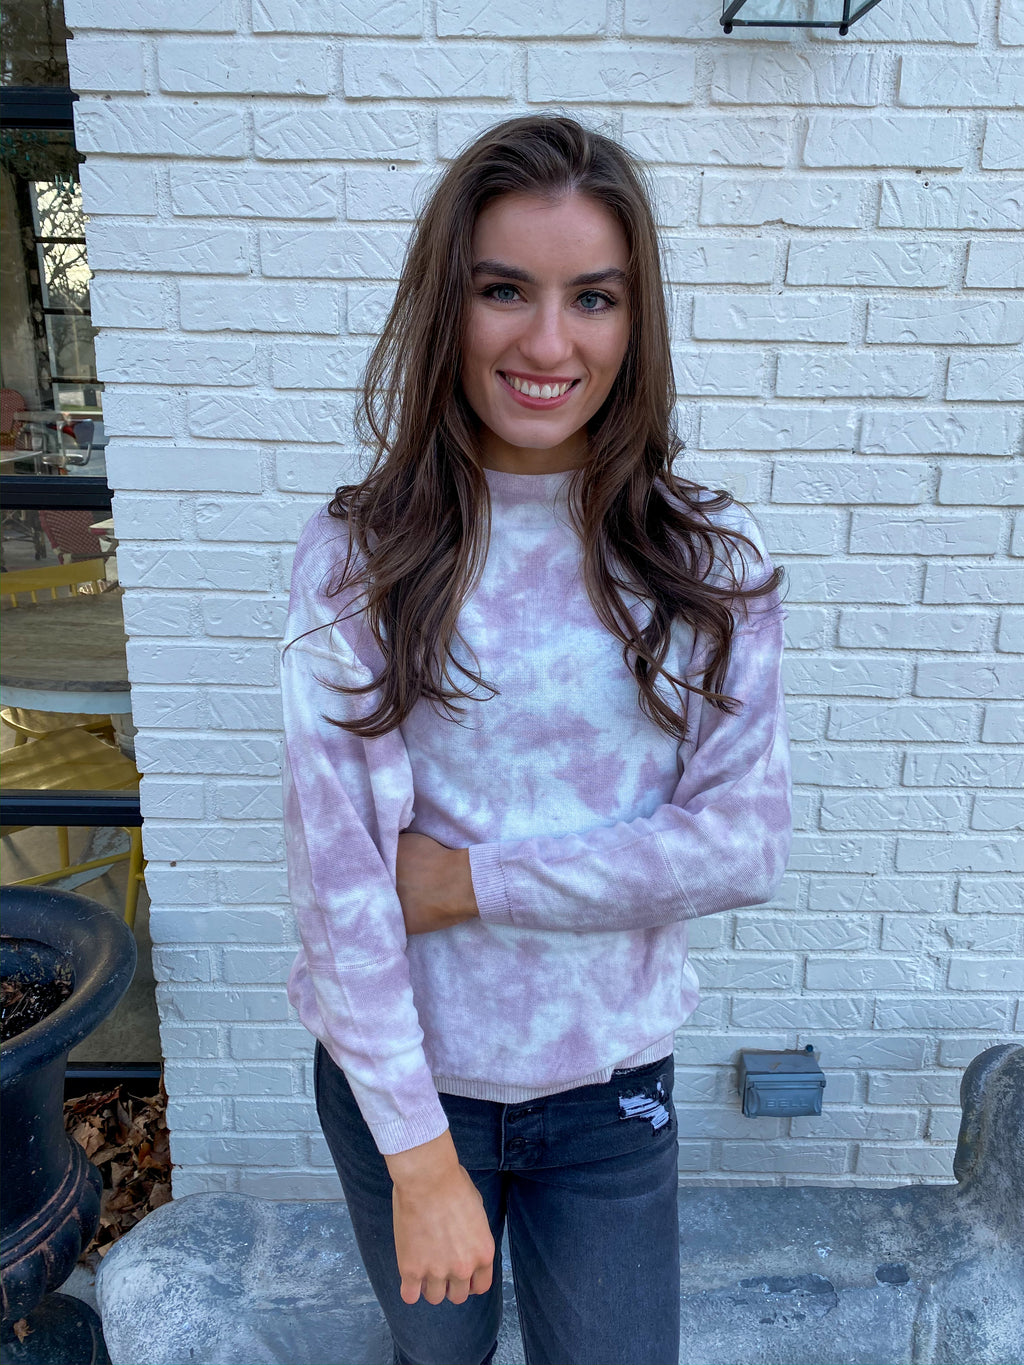 "<img src=""-Mock-Neck-Tie-Dye-Thermal-Soft-Pink-Front.jpg"" alt=""mock neck tie dye thermal in soft pink front view"">"